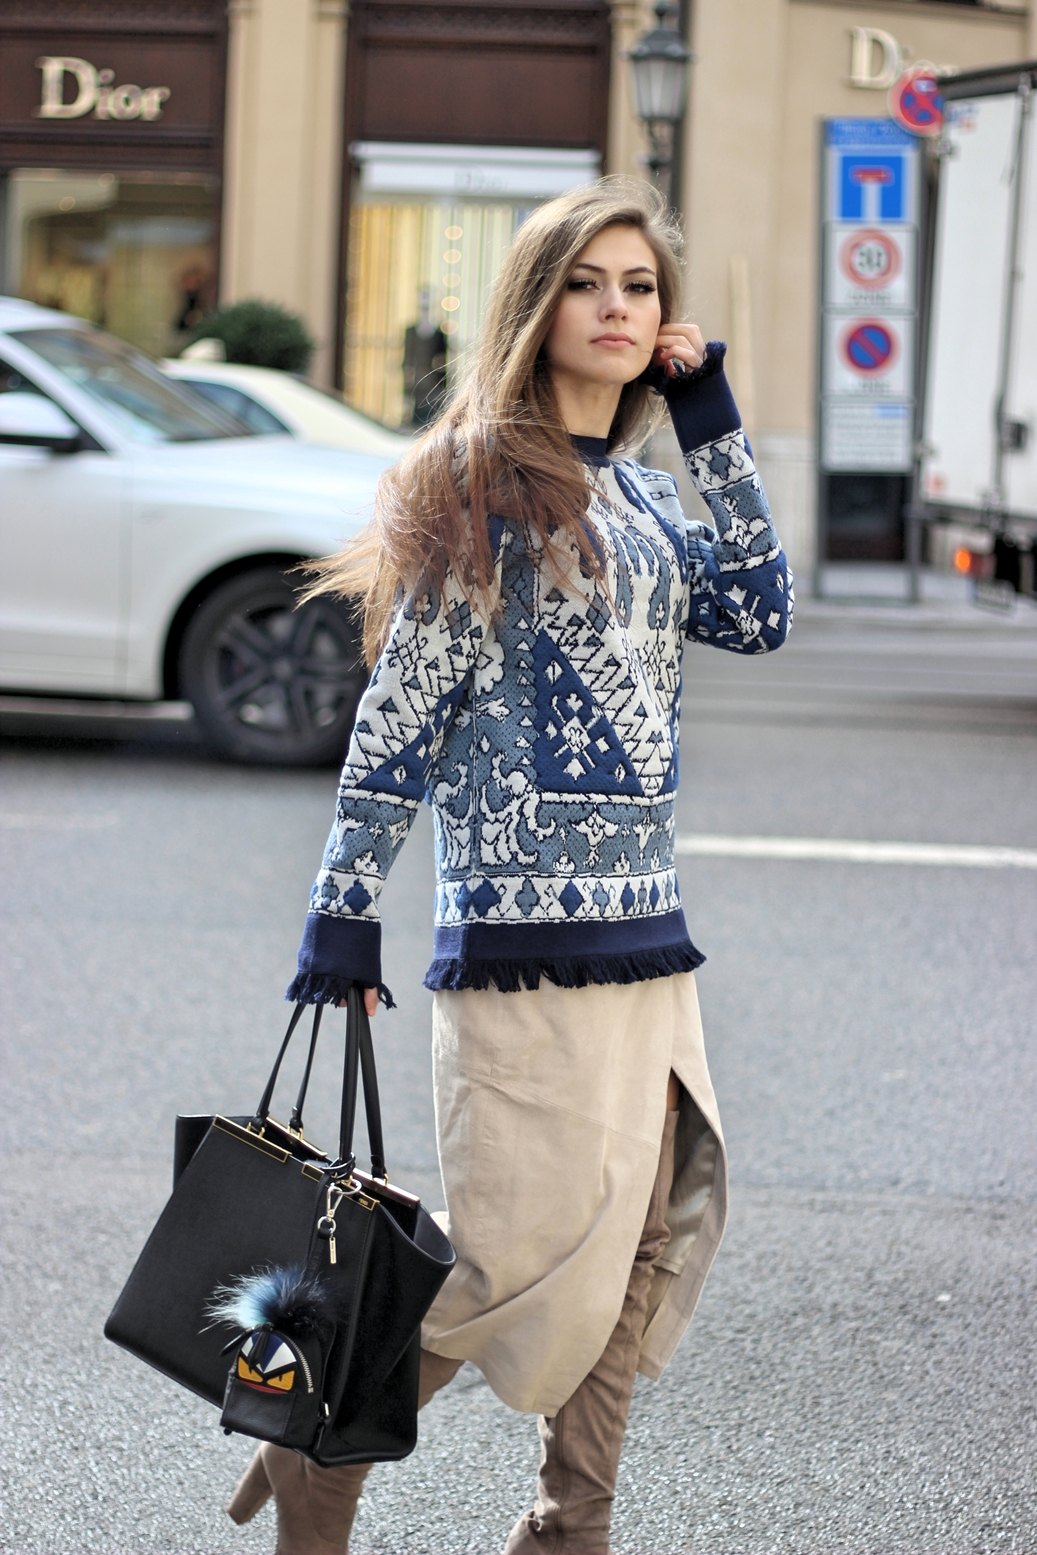 streetstyle-toryburch-fendi-bag-skirt-overknee-boots-germany